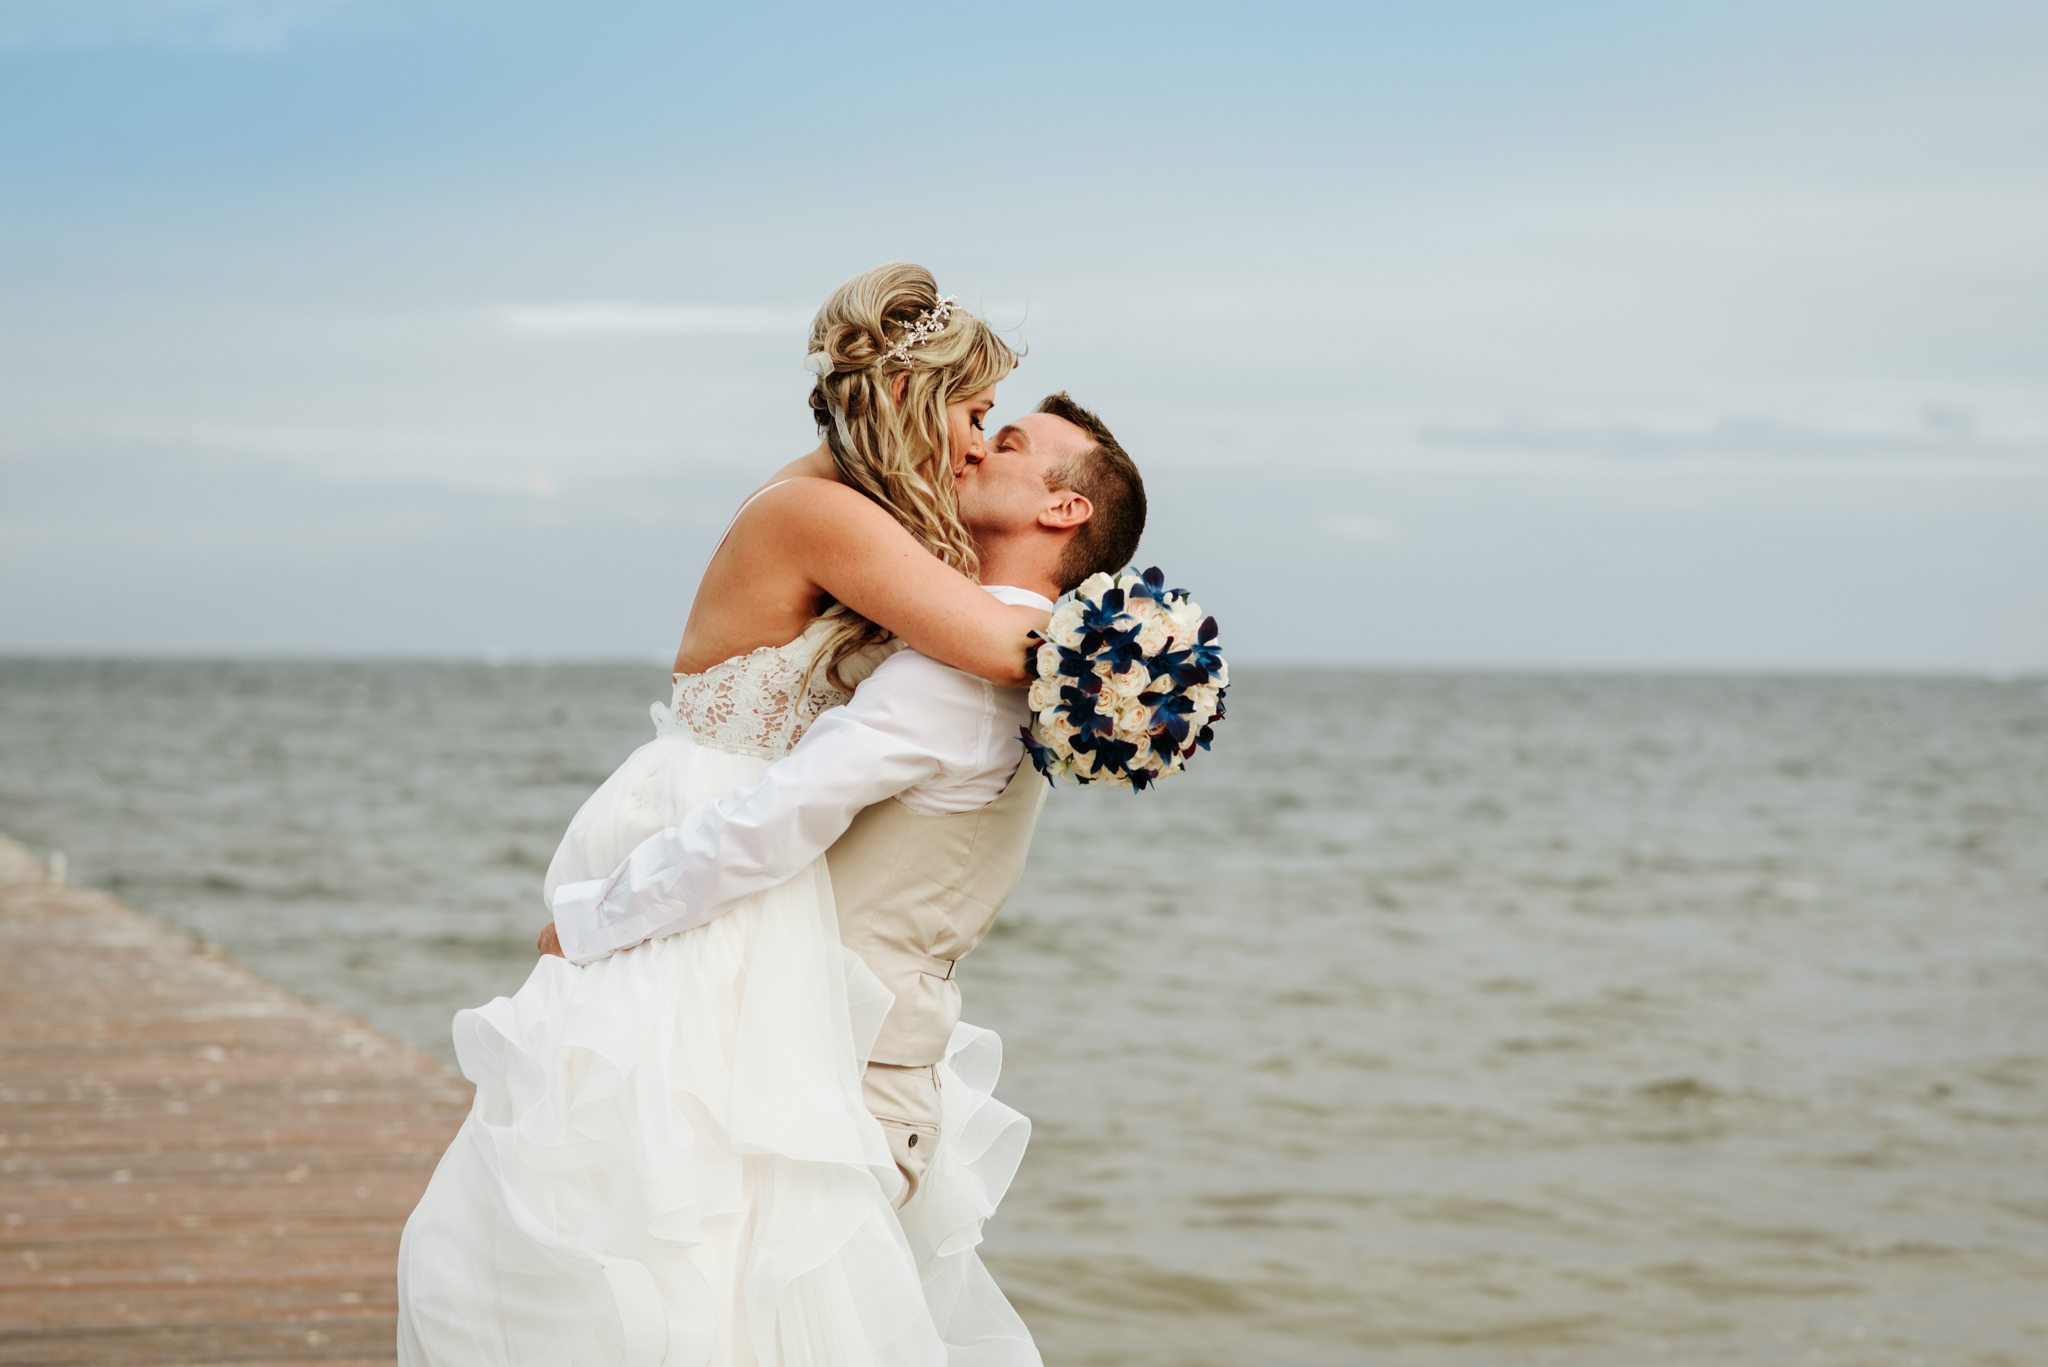 love-and-be-loved-photography-destination-wedding-photographer-cancun-mexico-jessica-jon-image-picture-photo-140.jpg